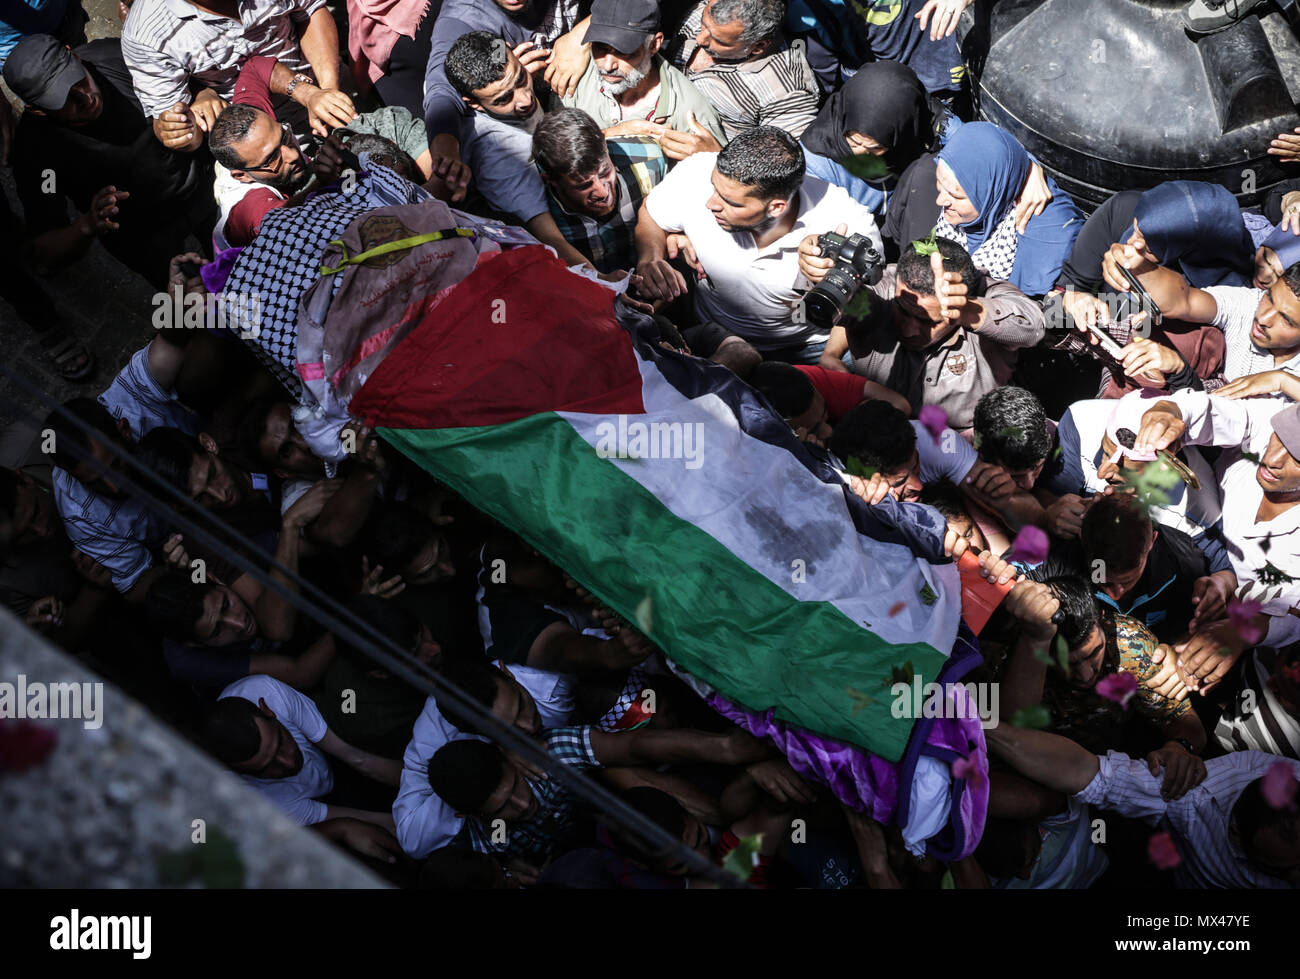 Gaza. 02nd June, 2018. Mourners carry the body of Palestinian nurse Razan Al-Najar, who according to health officials and a witness was killed by Israeli forces as she tried to help a wounded protester at the Gaza border, during her funeral in Khan Younis in the southern Gaza Strip June 2, 2018 Credit: Nidal Alwaheidi/Pacific Press/Alamy Live News - Stock Image